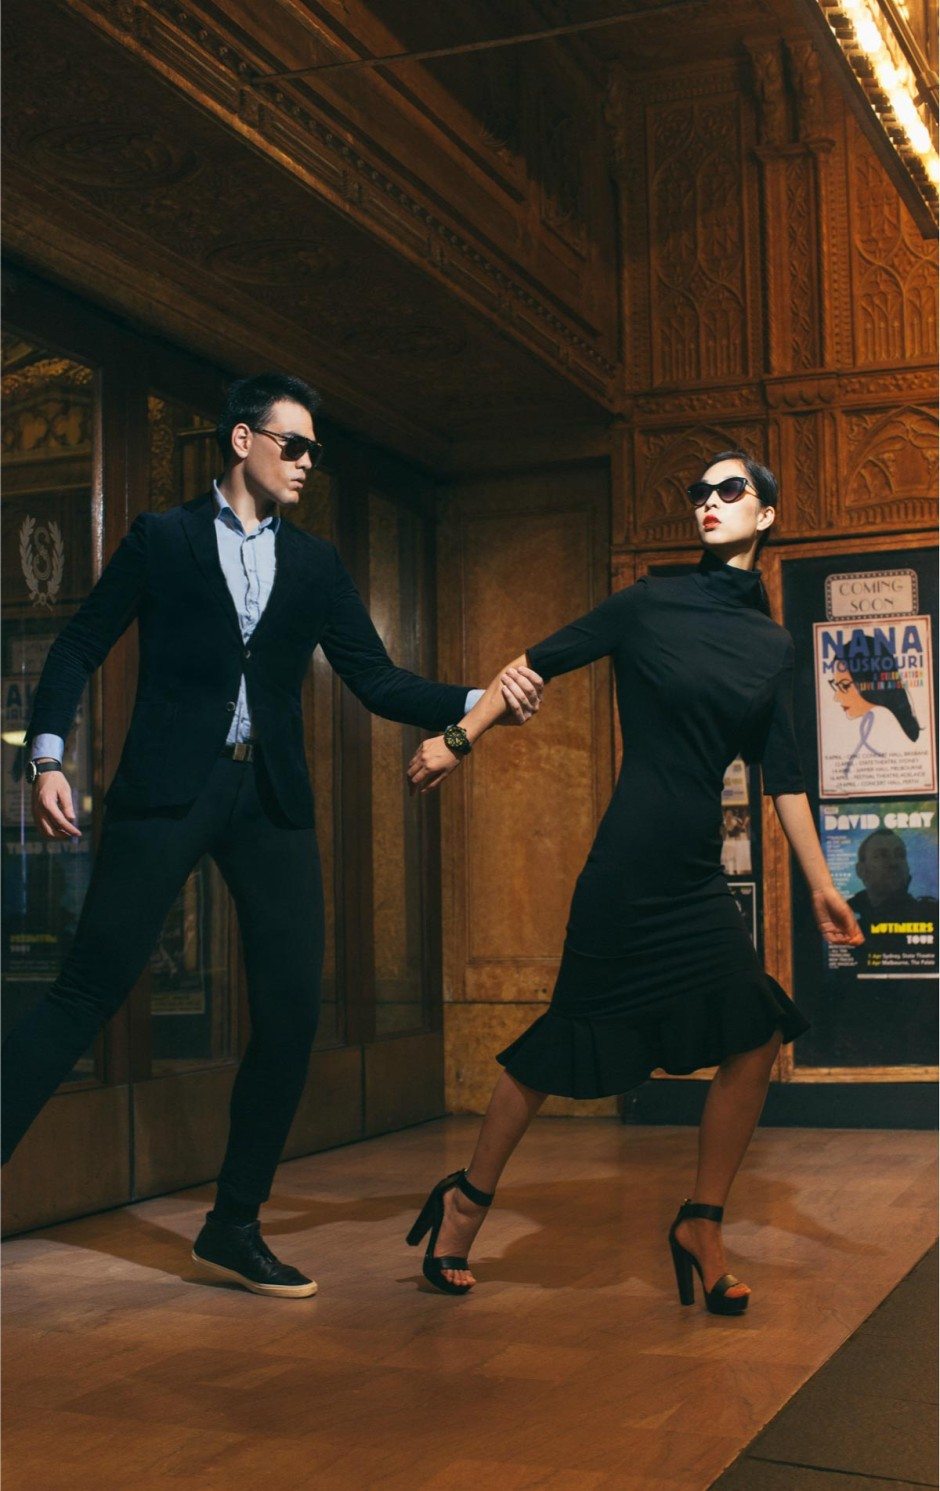 A male and female model walking through the State theatre in elegant clothing